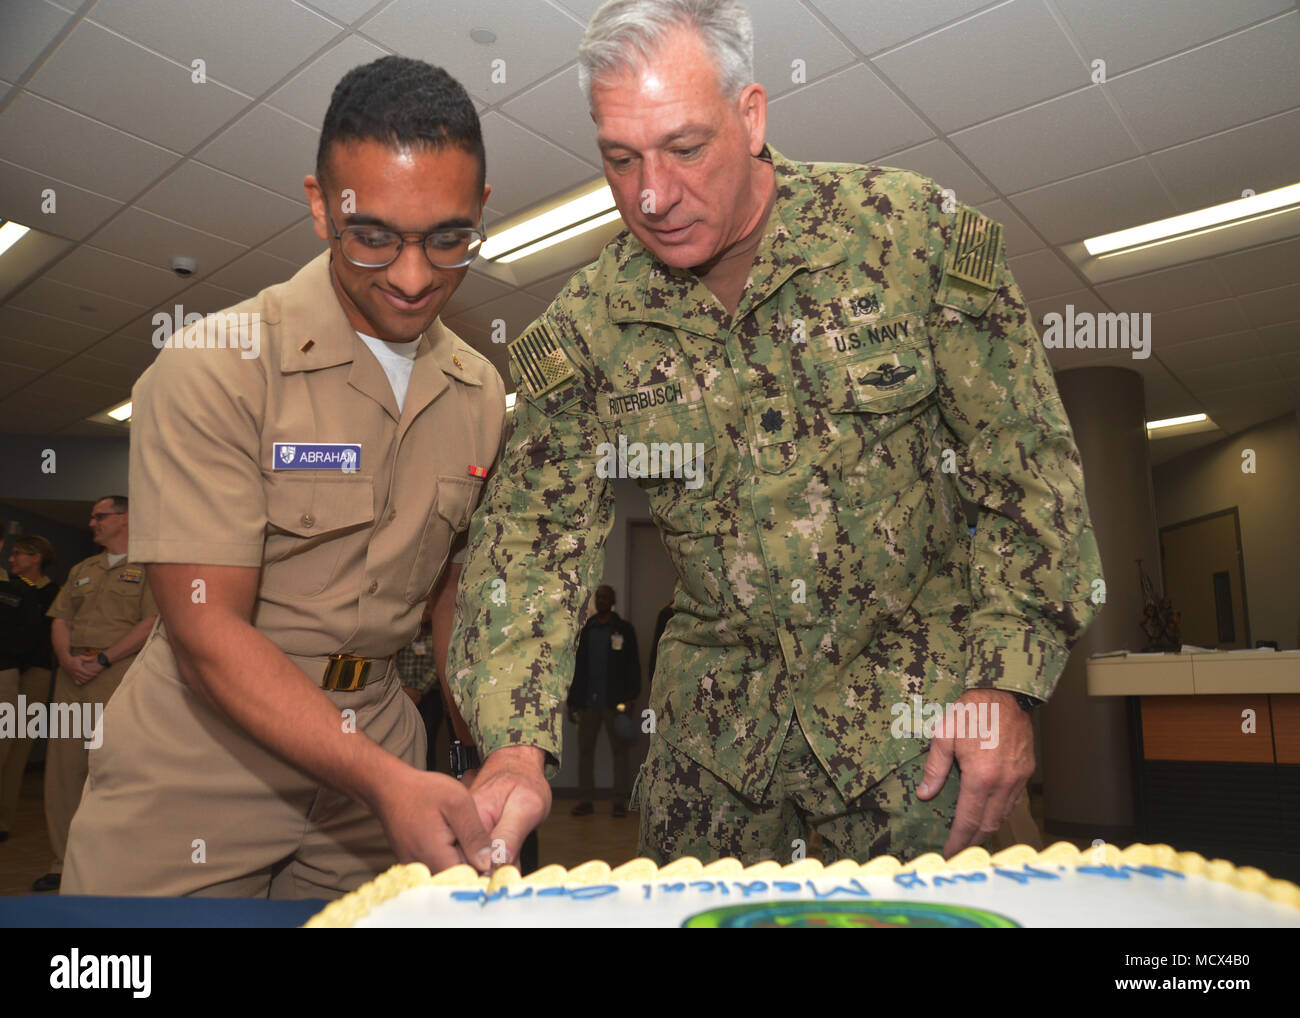 180302-N-PN275-1062 SAN DIEGO (March 02, 2018) End Vivek Abraham, left, and Cmdr Victor Ruttenbusch cut a cake as part of the 147th Medical Corps birthday celebration. Keeping with tradition the oldest and youngest Sailors cut the celebratory cake. (U.S. Navy Photo by Mass Communication Specialist 2nd Class Zach Kreitzer/Released) - Stock Image